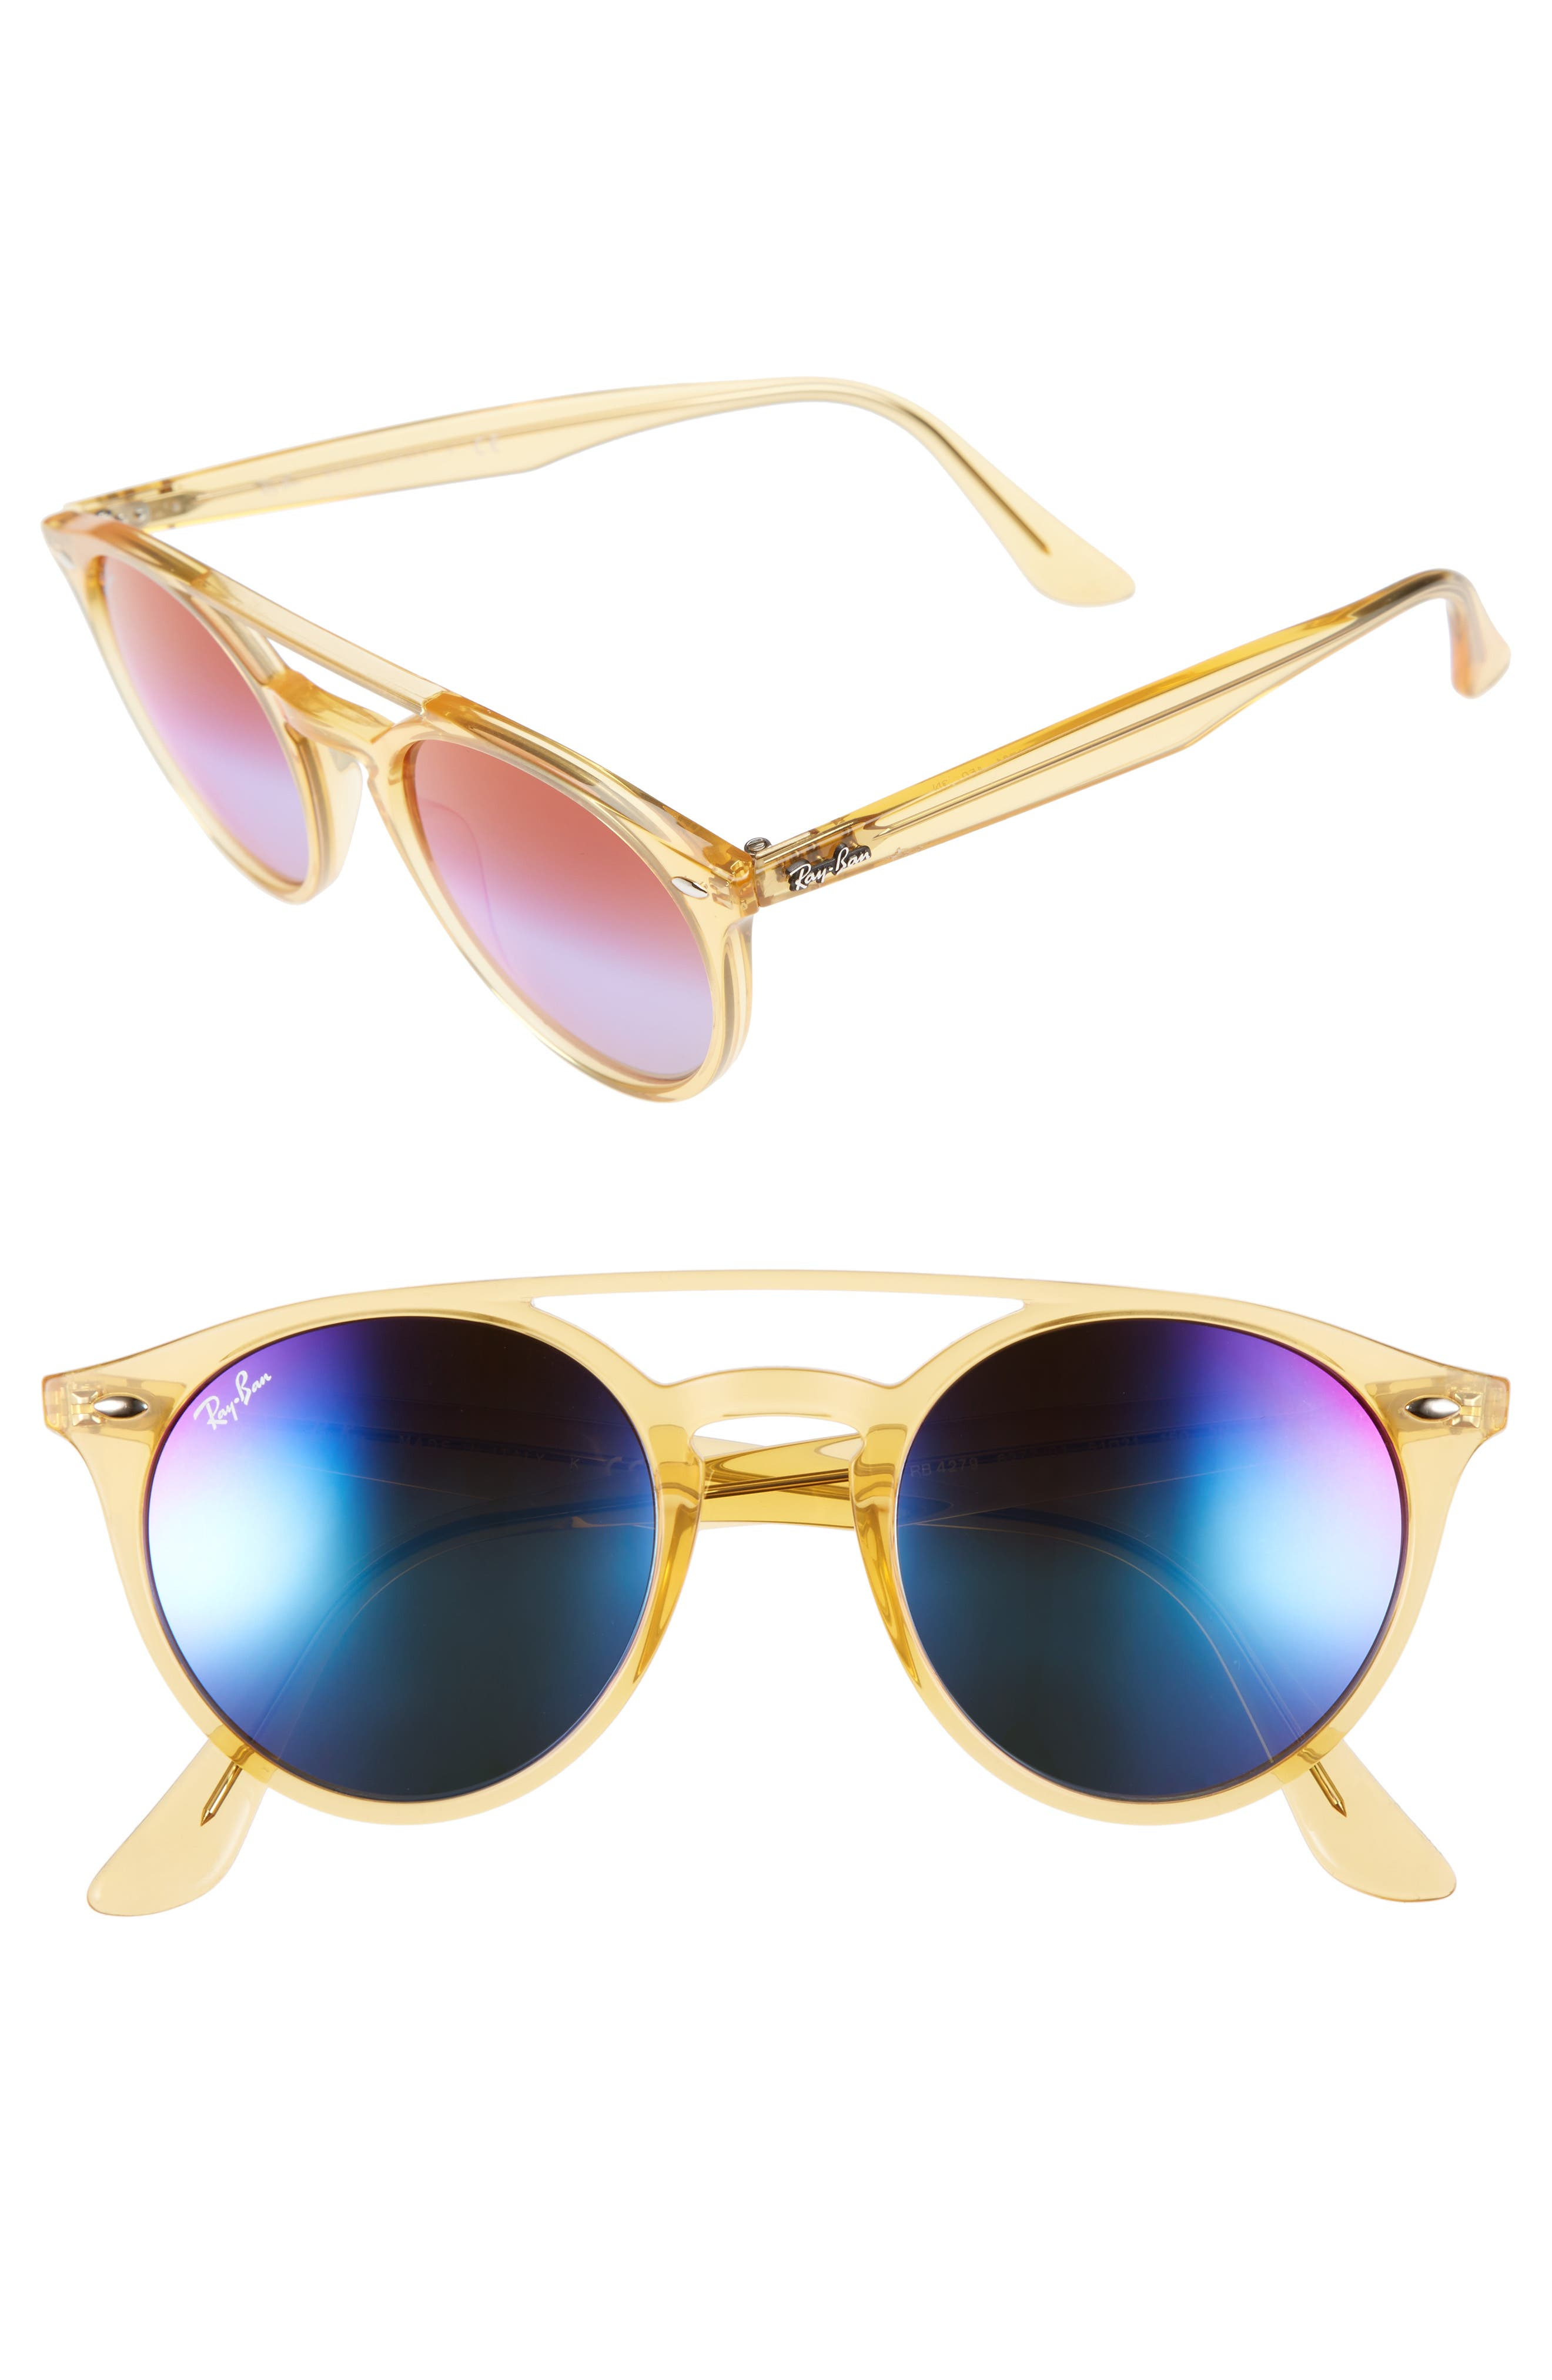 Image of Ray-Ban 51mm Mirrored Rainbow Sunglasses